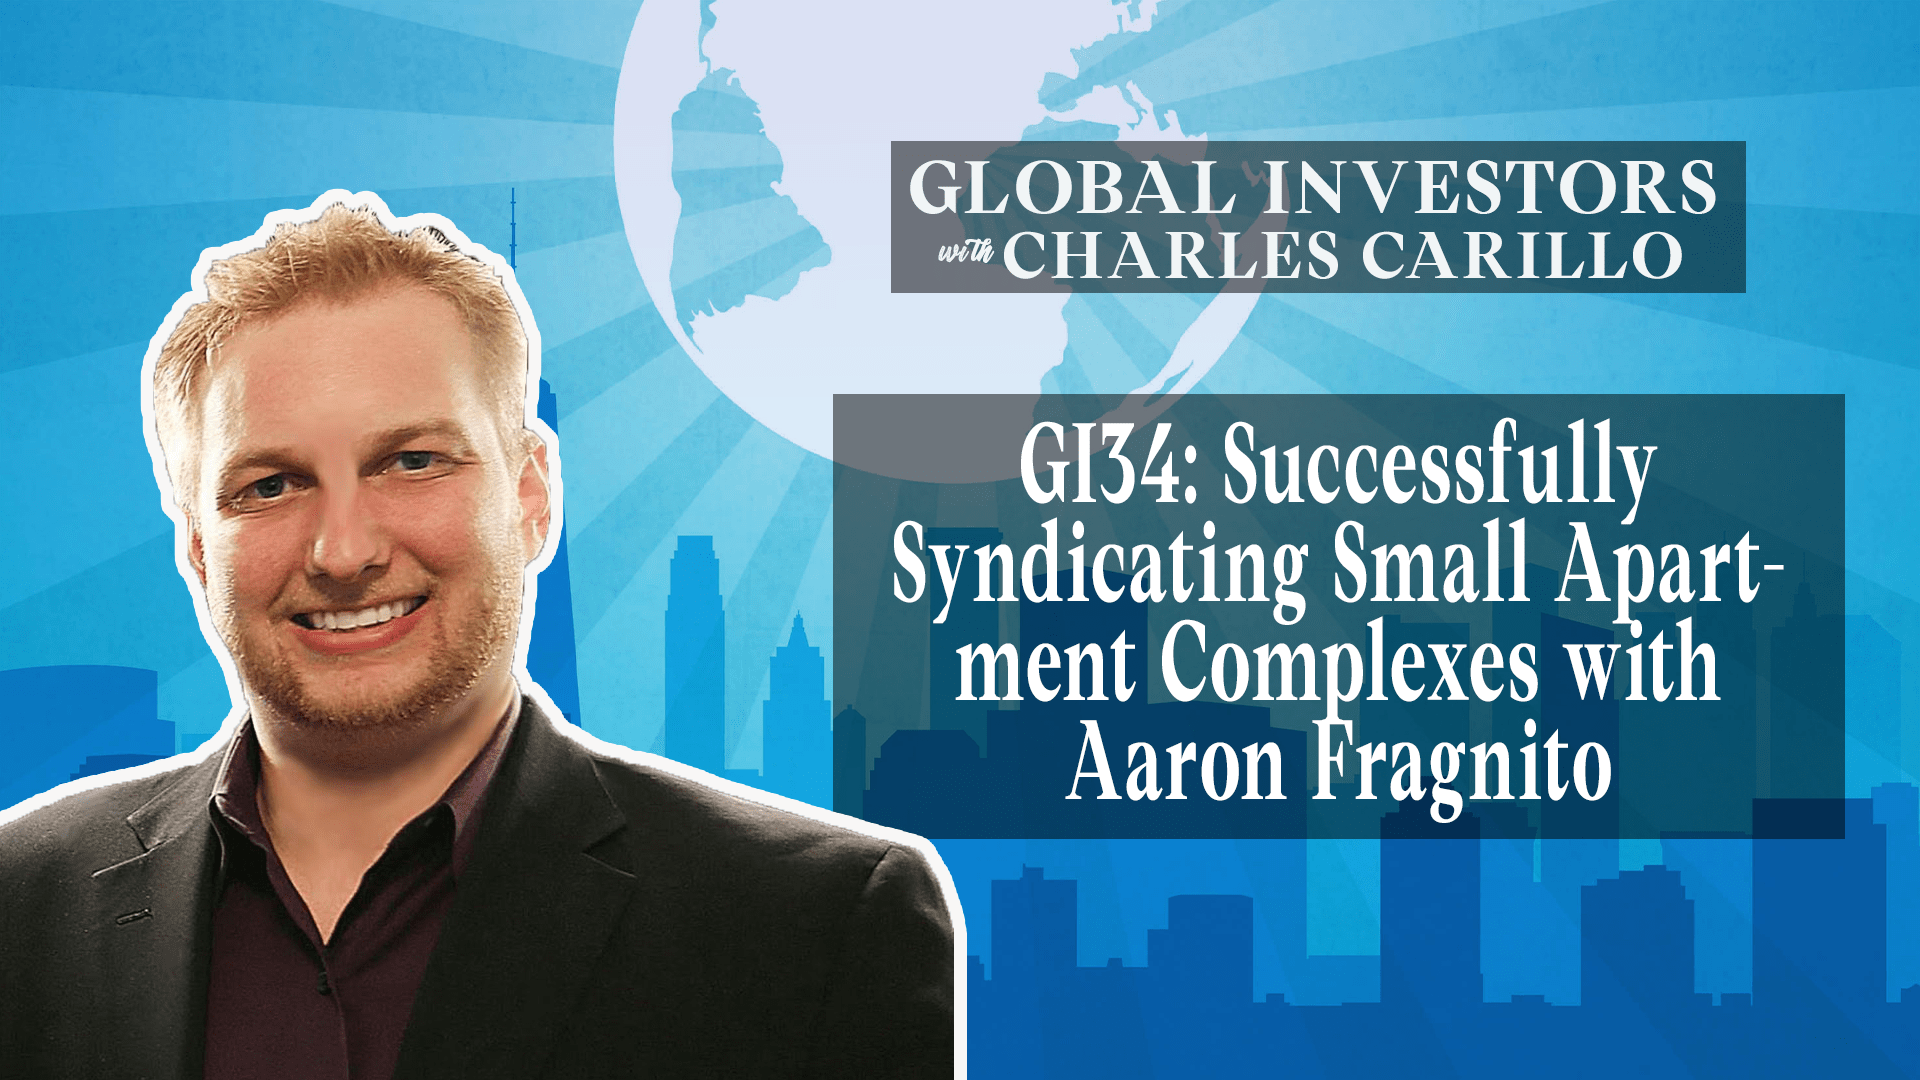 GI34: Successfully Syndicating Small Apartment Complexes with Aaron Fragnito